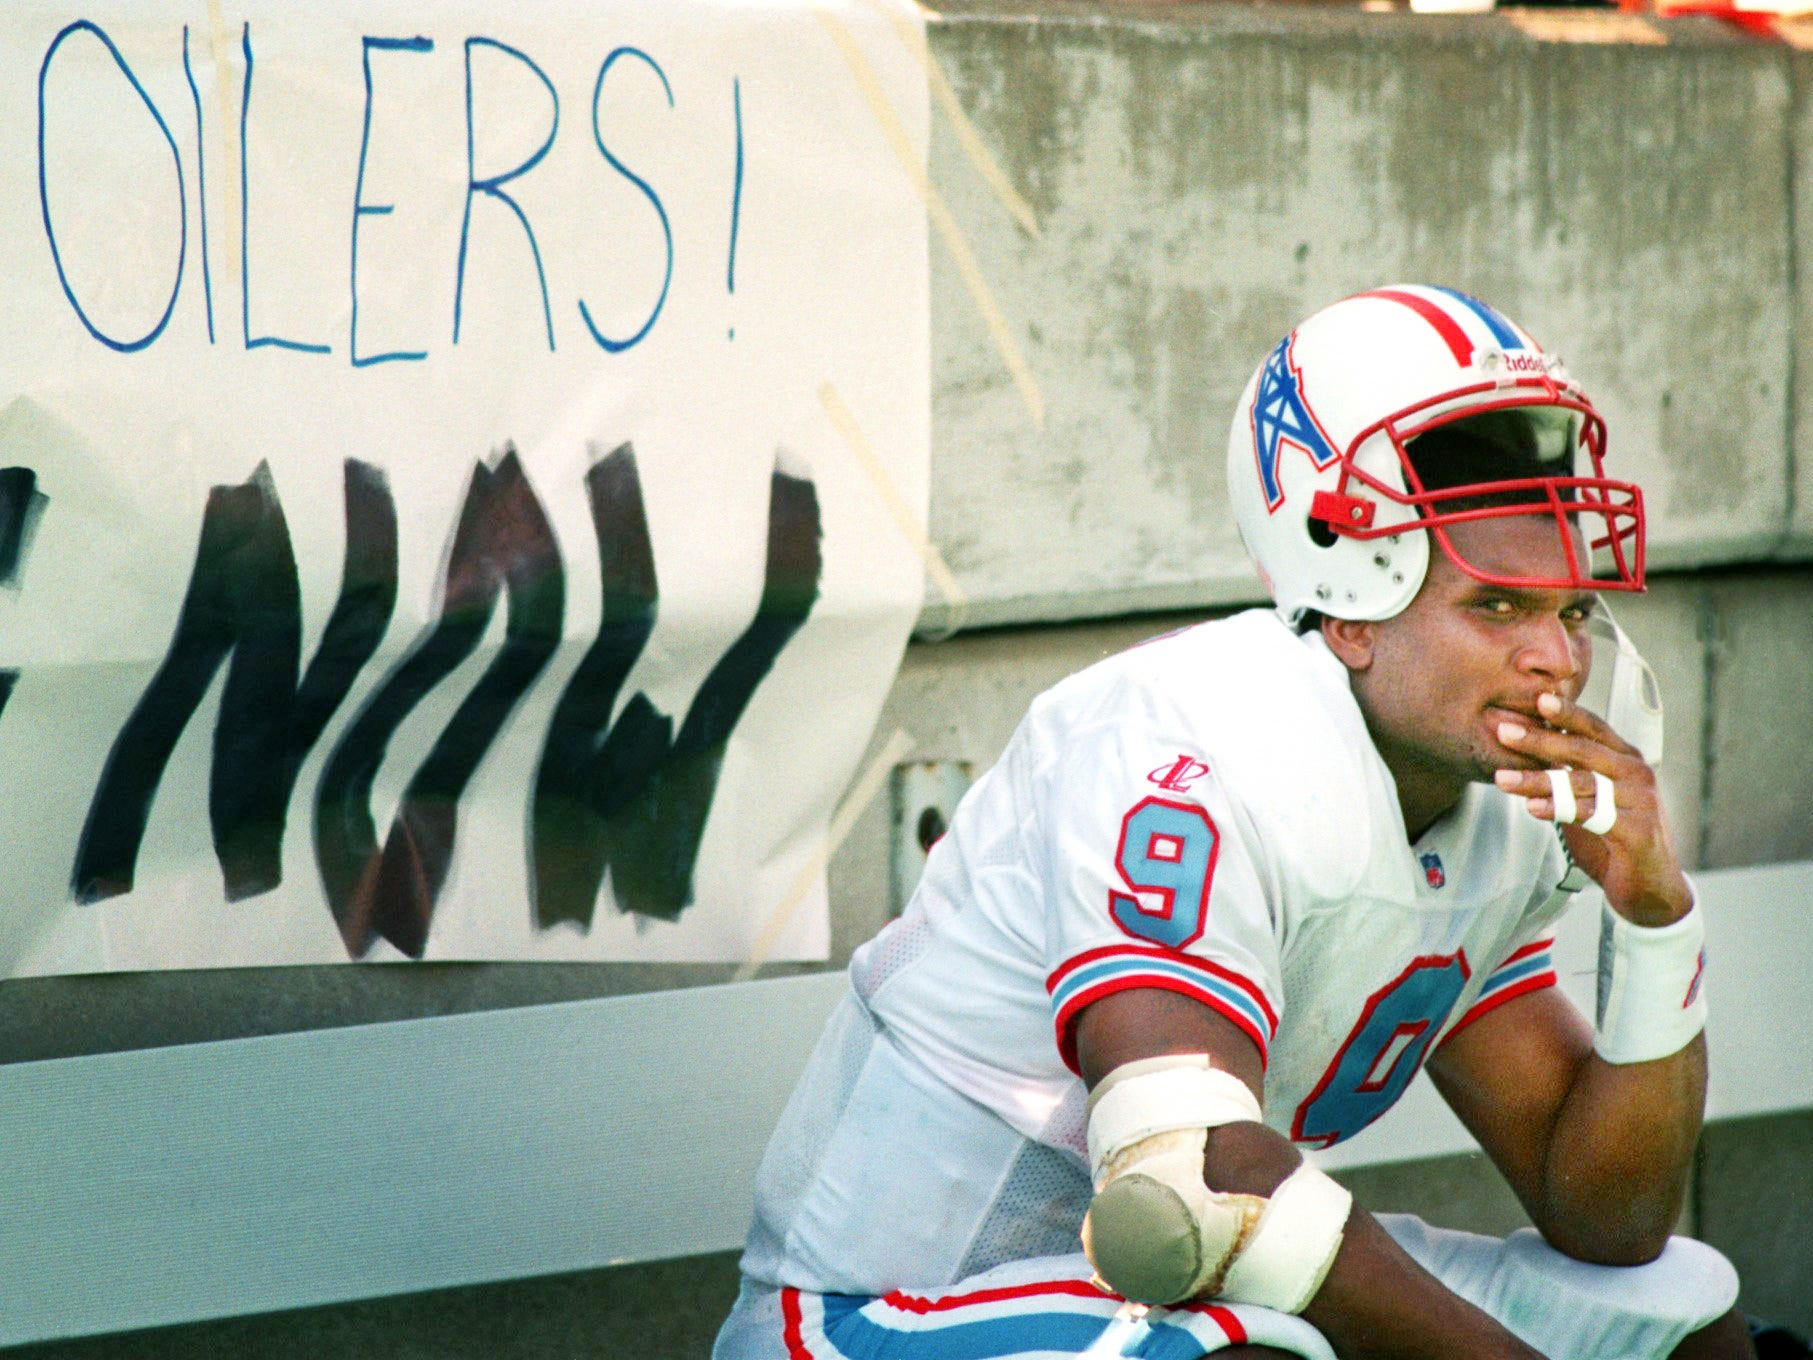 Tennessee Oilers Quarterback Steve McNair sits alone on the bench after the Oilers lost the to the San Diego Chargers 13-7 in the season home opener at Vanderbilt University's Dudley Field Sept. 13, 1998.